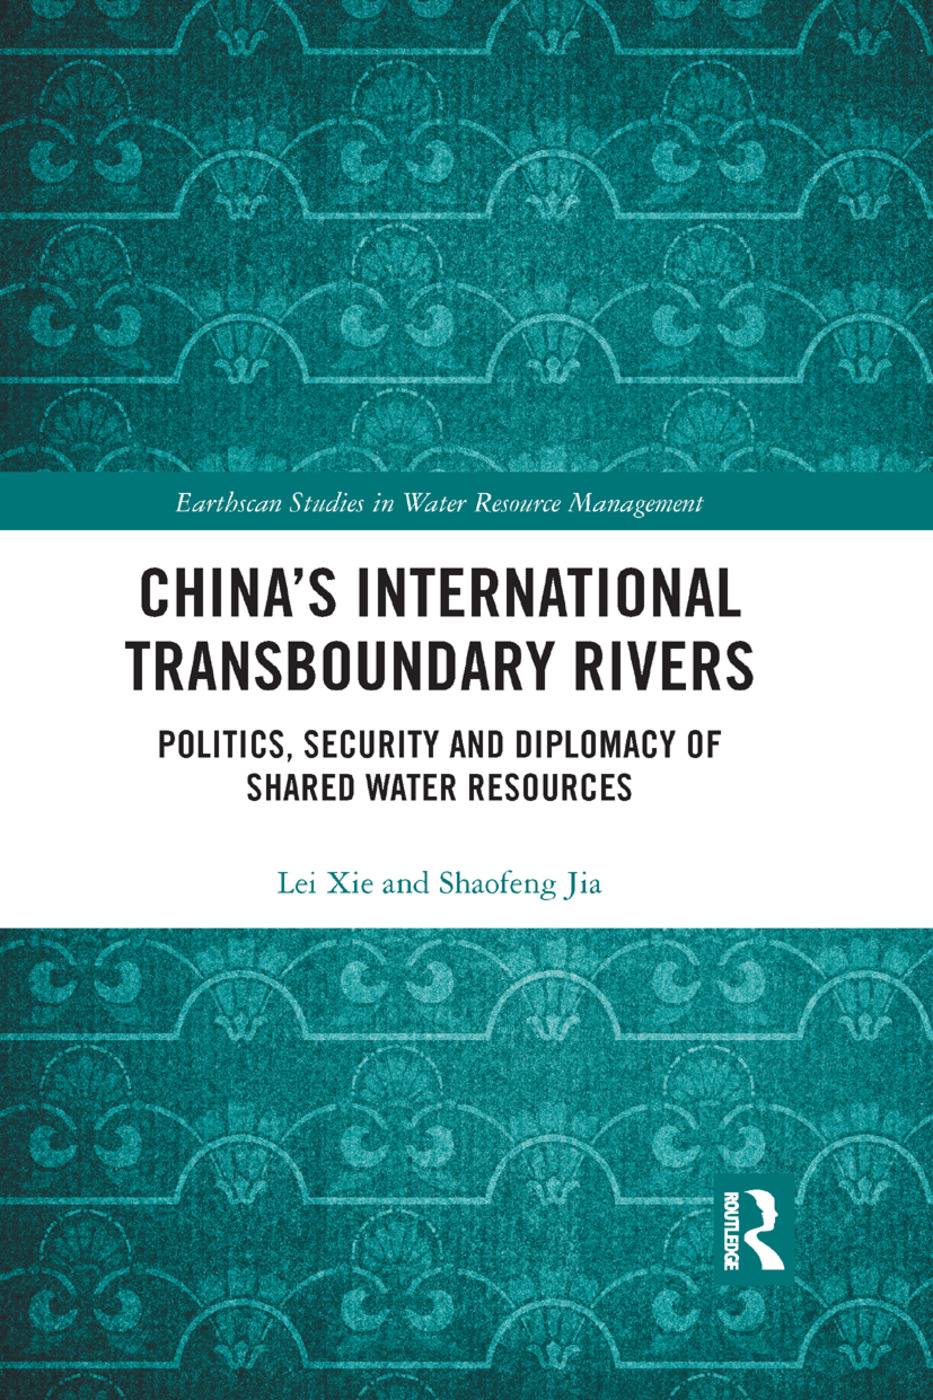 China's International Transboundary Rivers: Politics, Security and Diplomacy of Shared Water Resources book cover